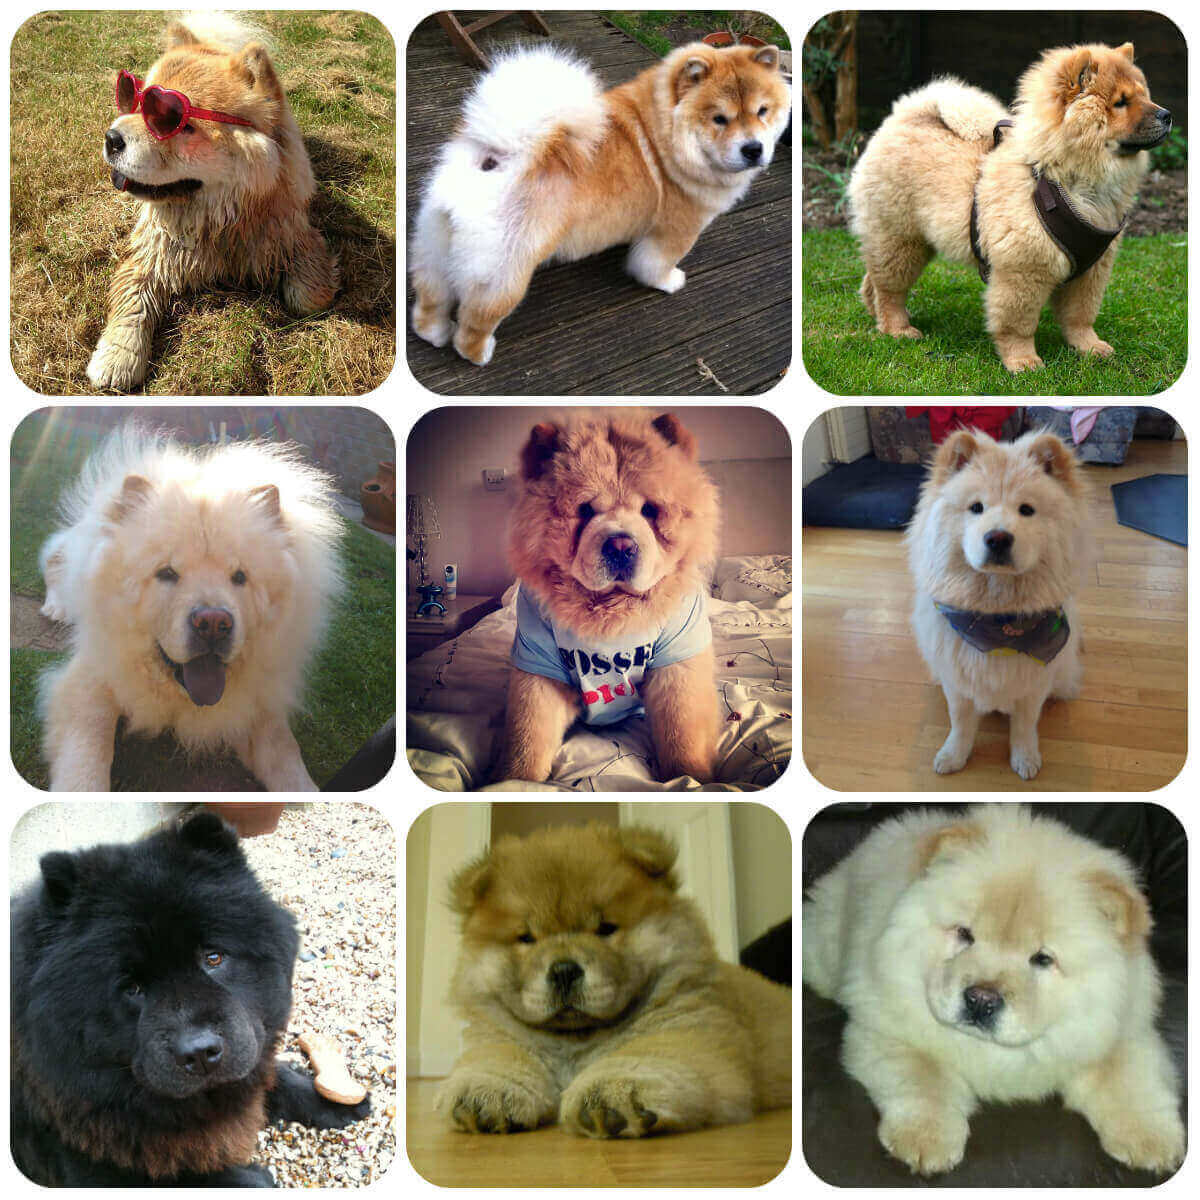 A collage of chow chow dogs and puppies, part of BorrowMyDoggy's guide to dog breeds.